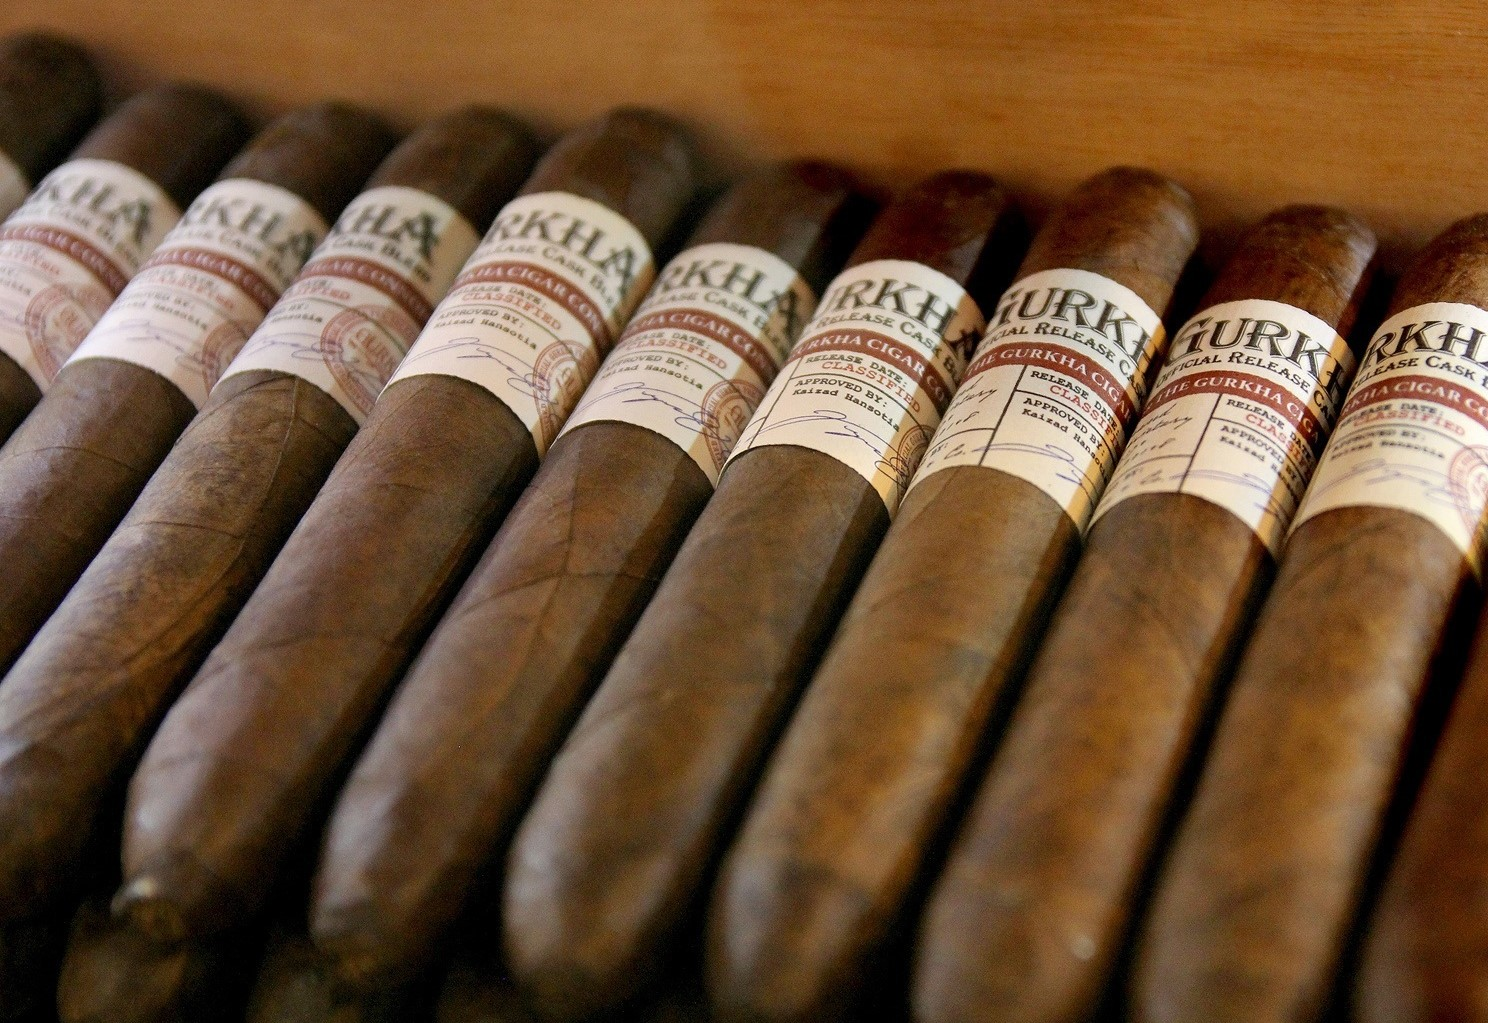 Gurkha's Most Extravagant Cigars